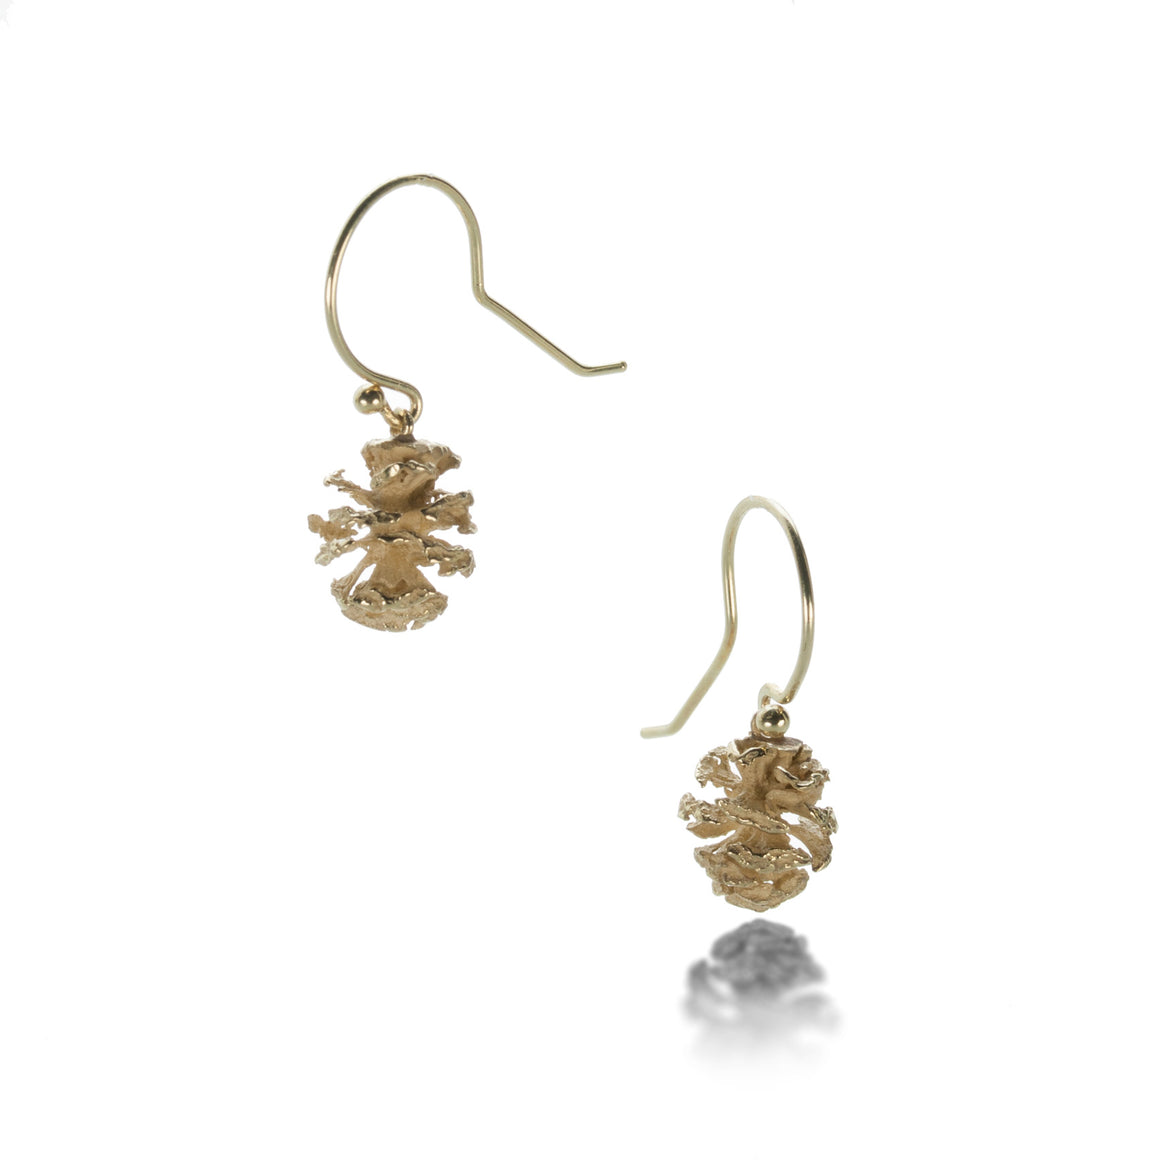 John Iversen Pine Cone Earrings | Quadrum Gallery